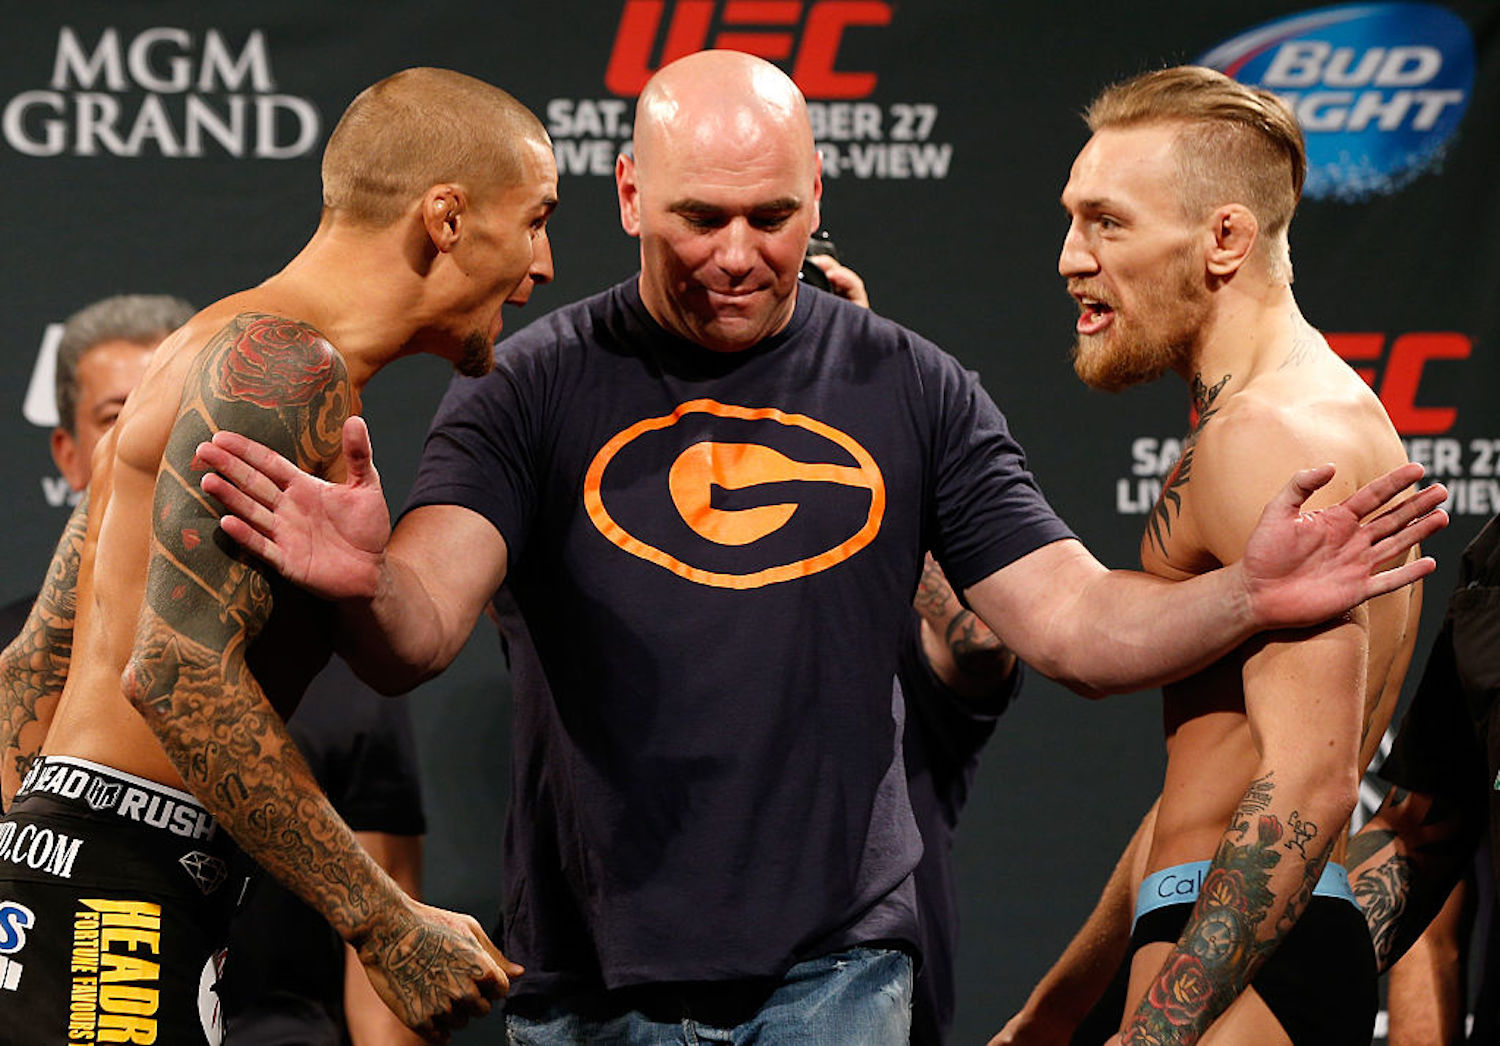 Dustin Poirier sure is excited about his upcoming bout against Conor McGregor. Some might say a little too excited after his recent comments.